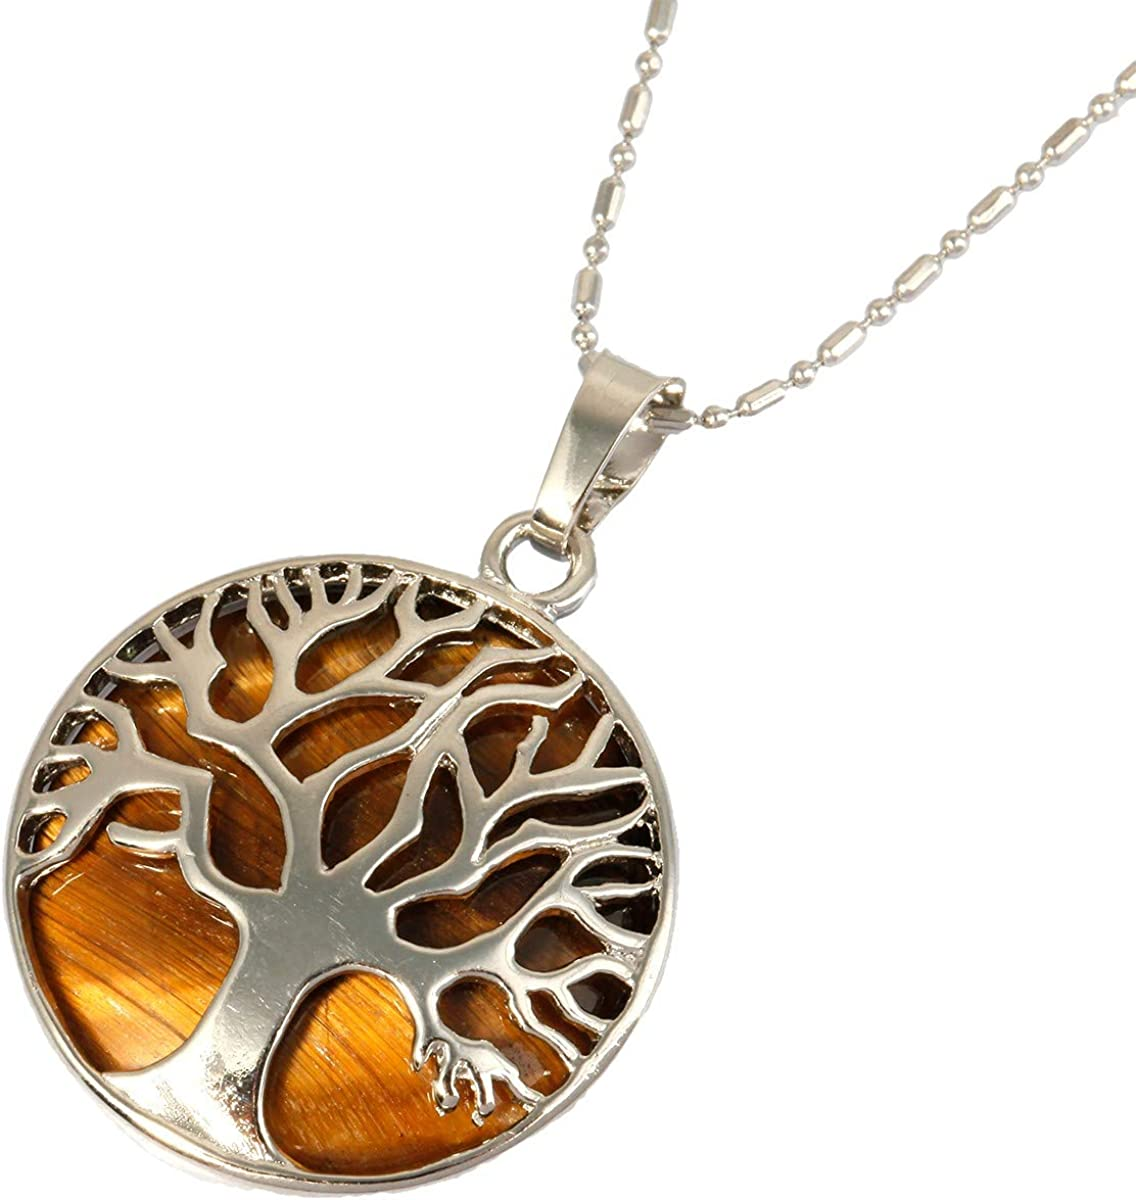 Nupuyai Tree of Life Stone Pendant Necklace for Unisex, Pendants with Chain 19.5